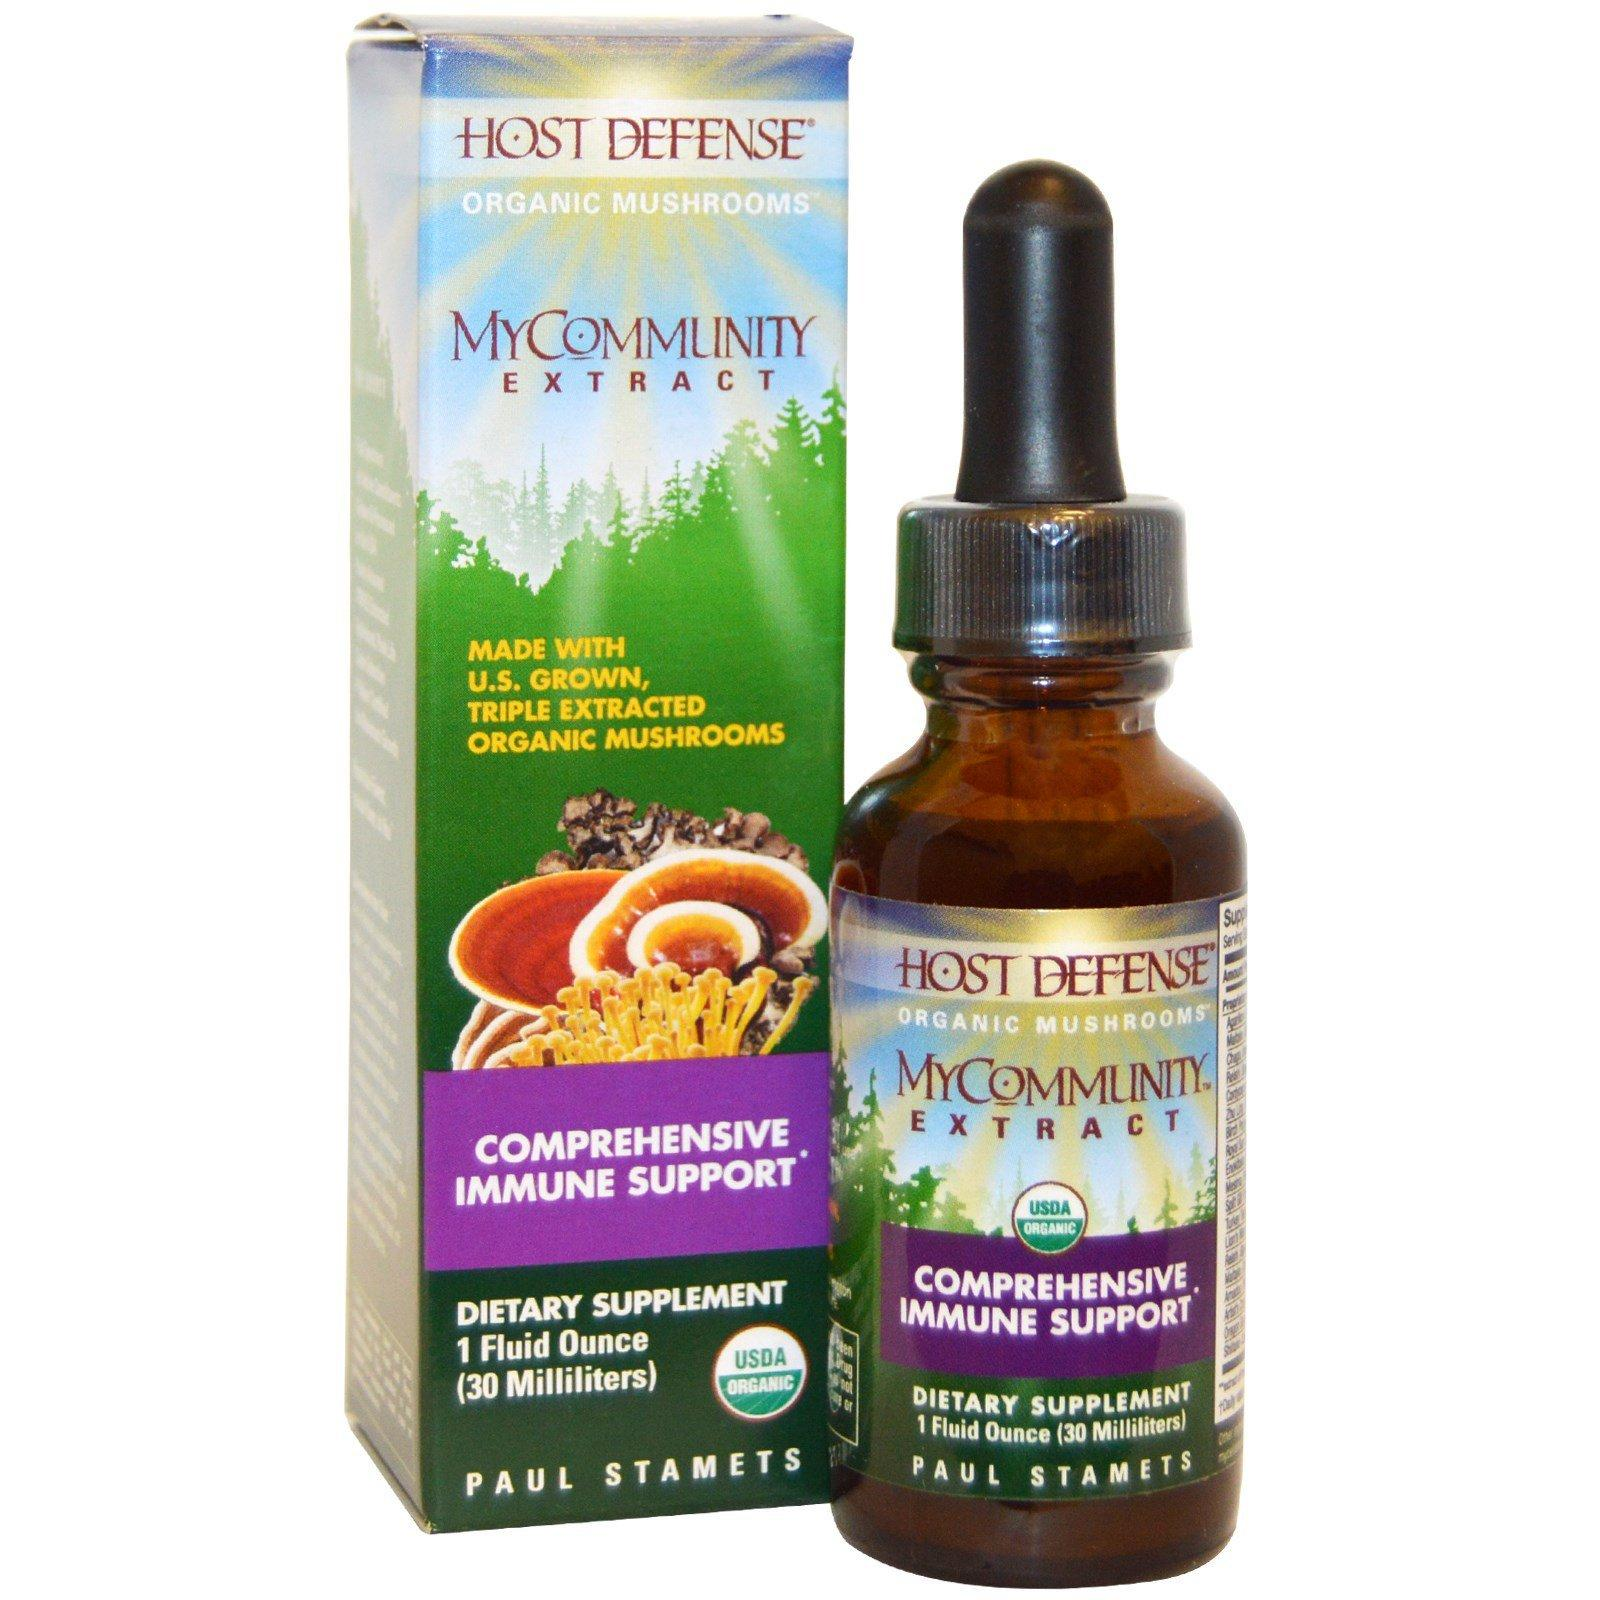 Supplements & Vitamins - Host Defense - Mycommunity Extract, 30ml